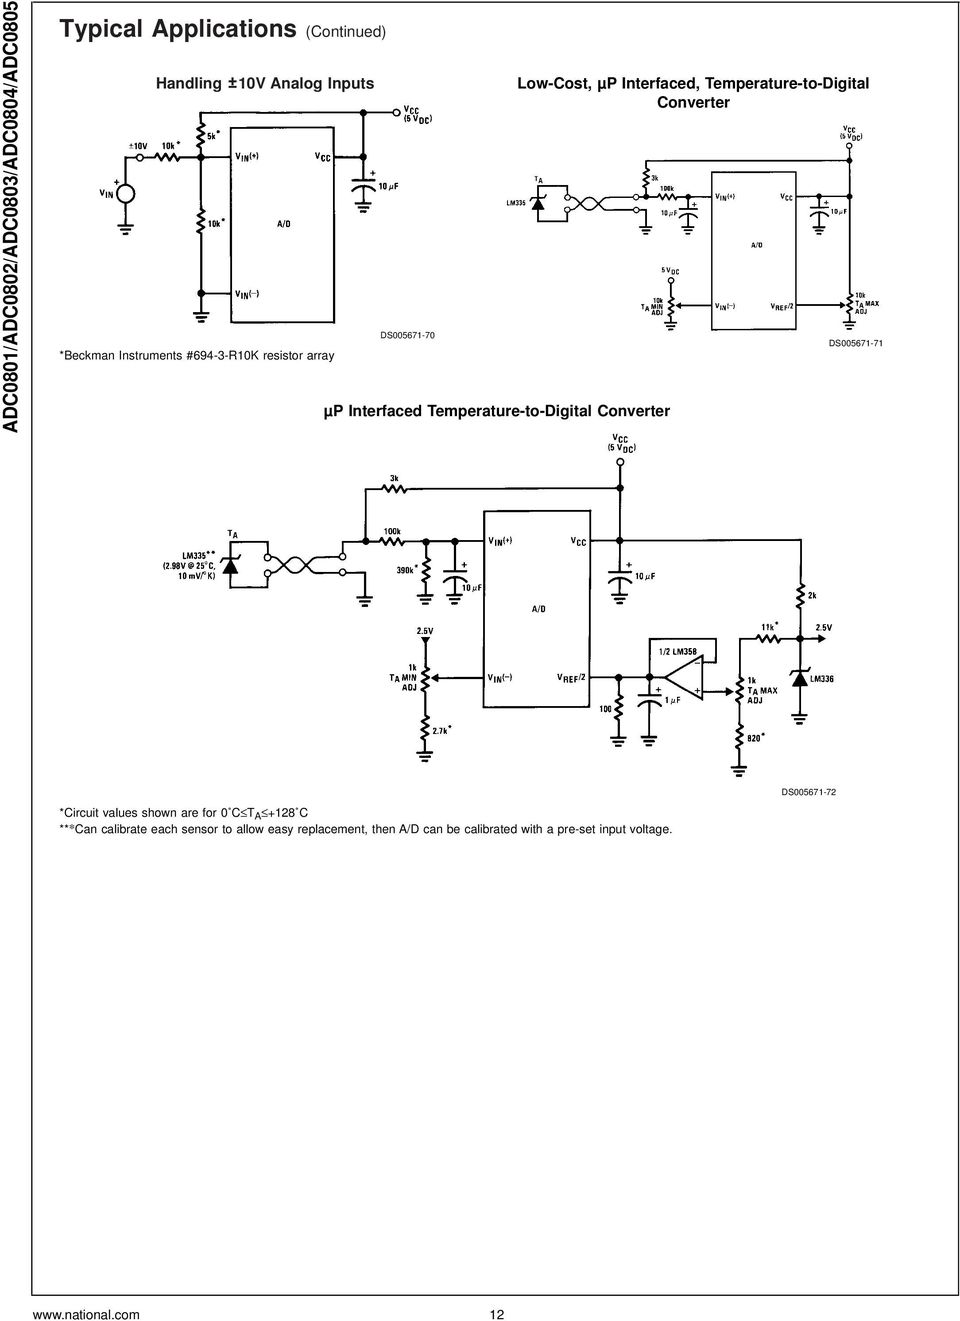 Adc0801 Adc0802 Adc0803 Adc0804 Adc Bit P Compatible A D Converters Simple Power Pulse Using By Lm350 And Ne555 Circuit Diagram Interfaced Temperature To Digital Converter Ds005671 71 Values Shown Are